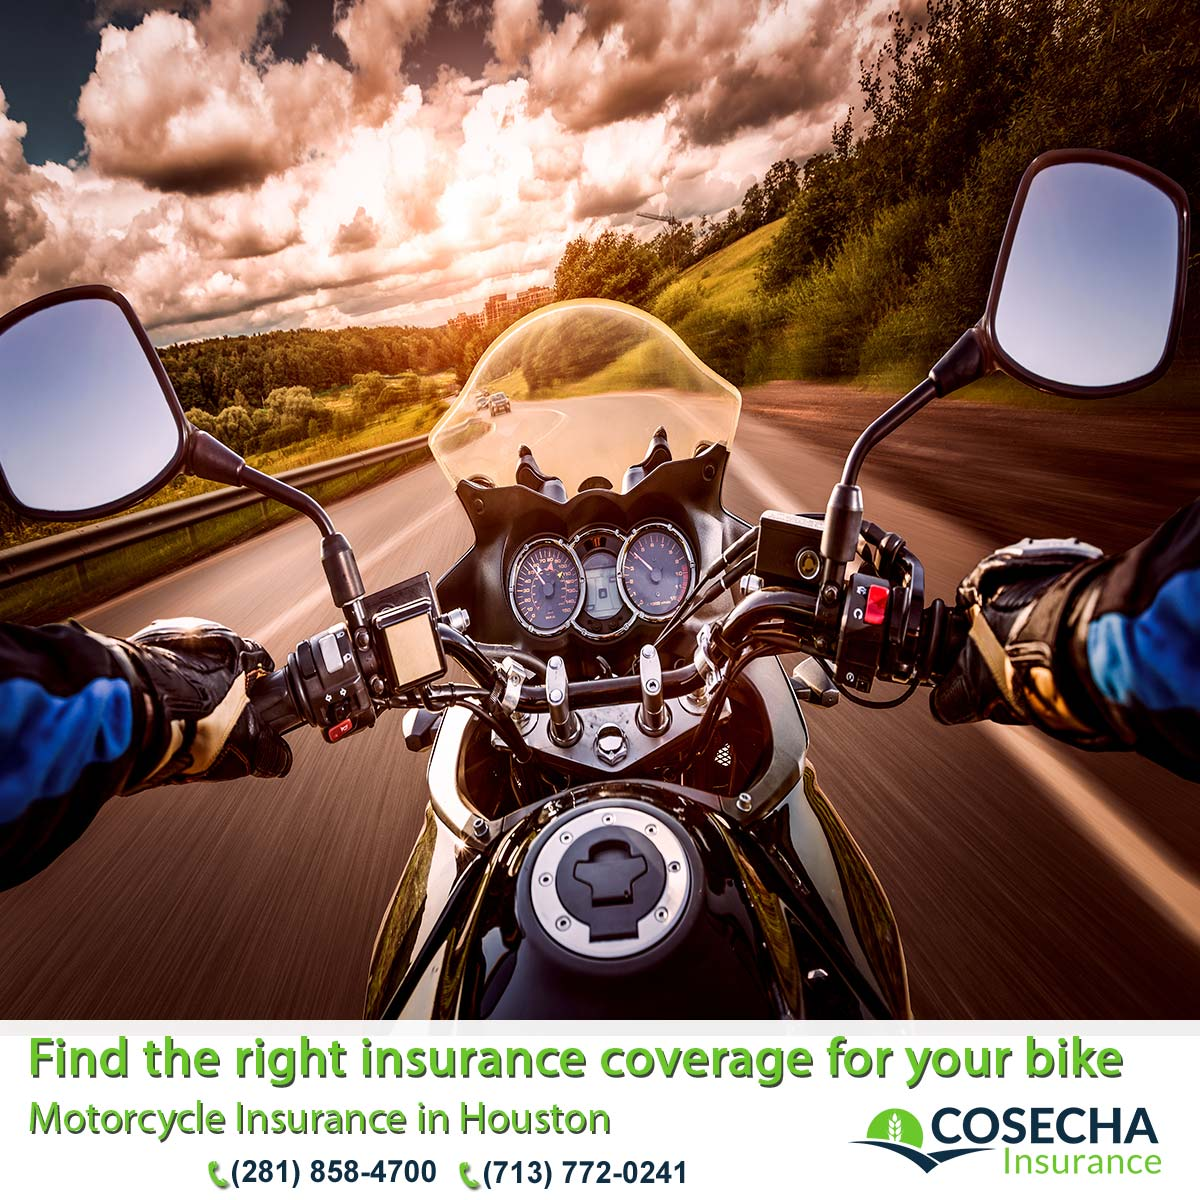 09 Motorcycle Insurance in Houston